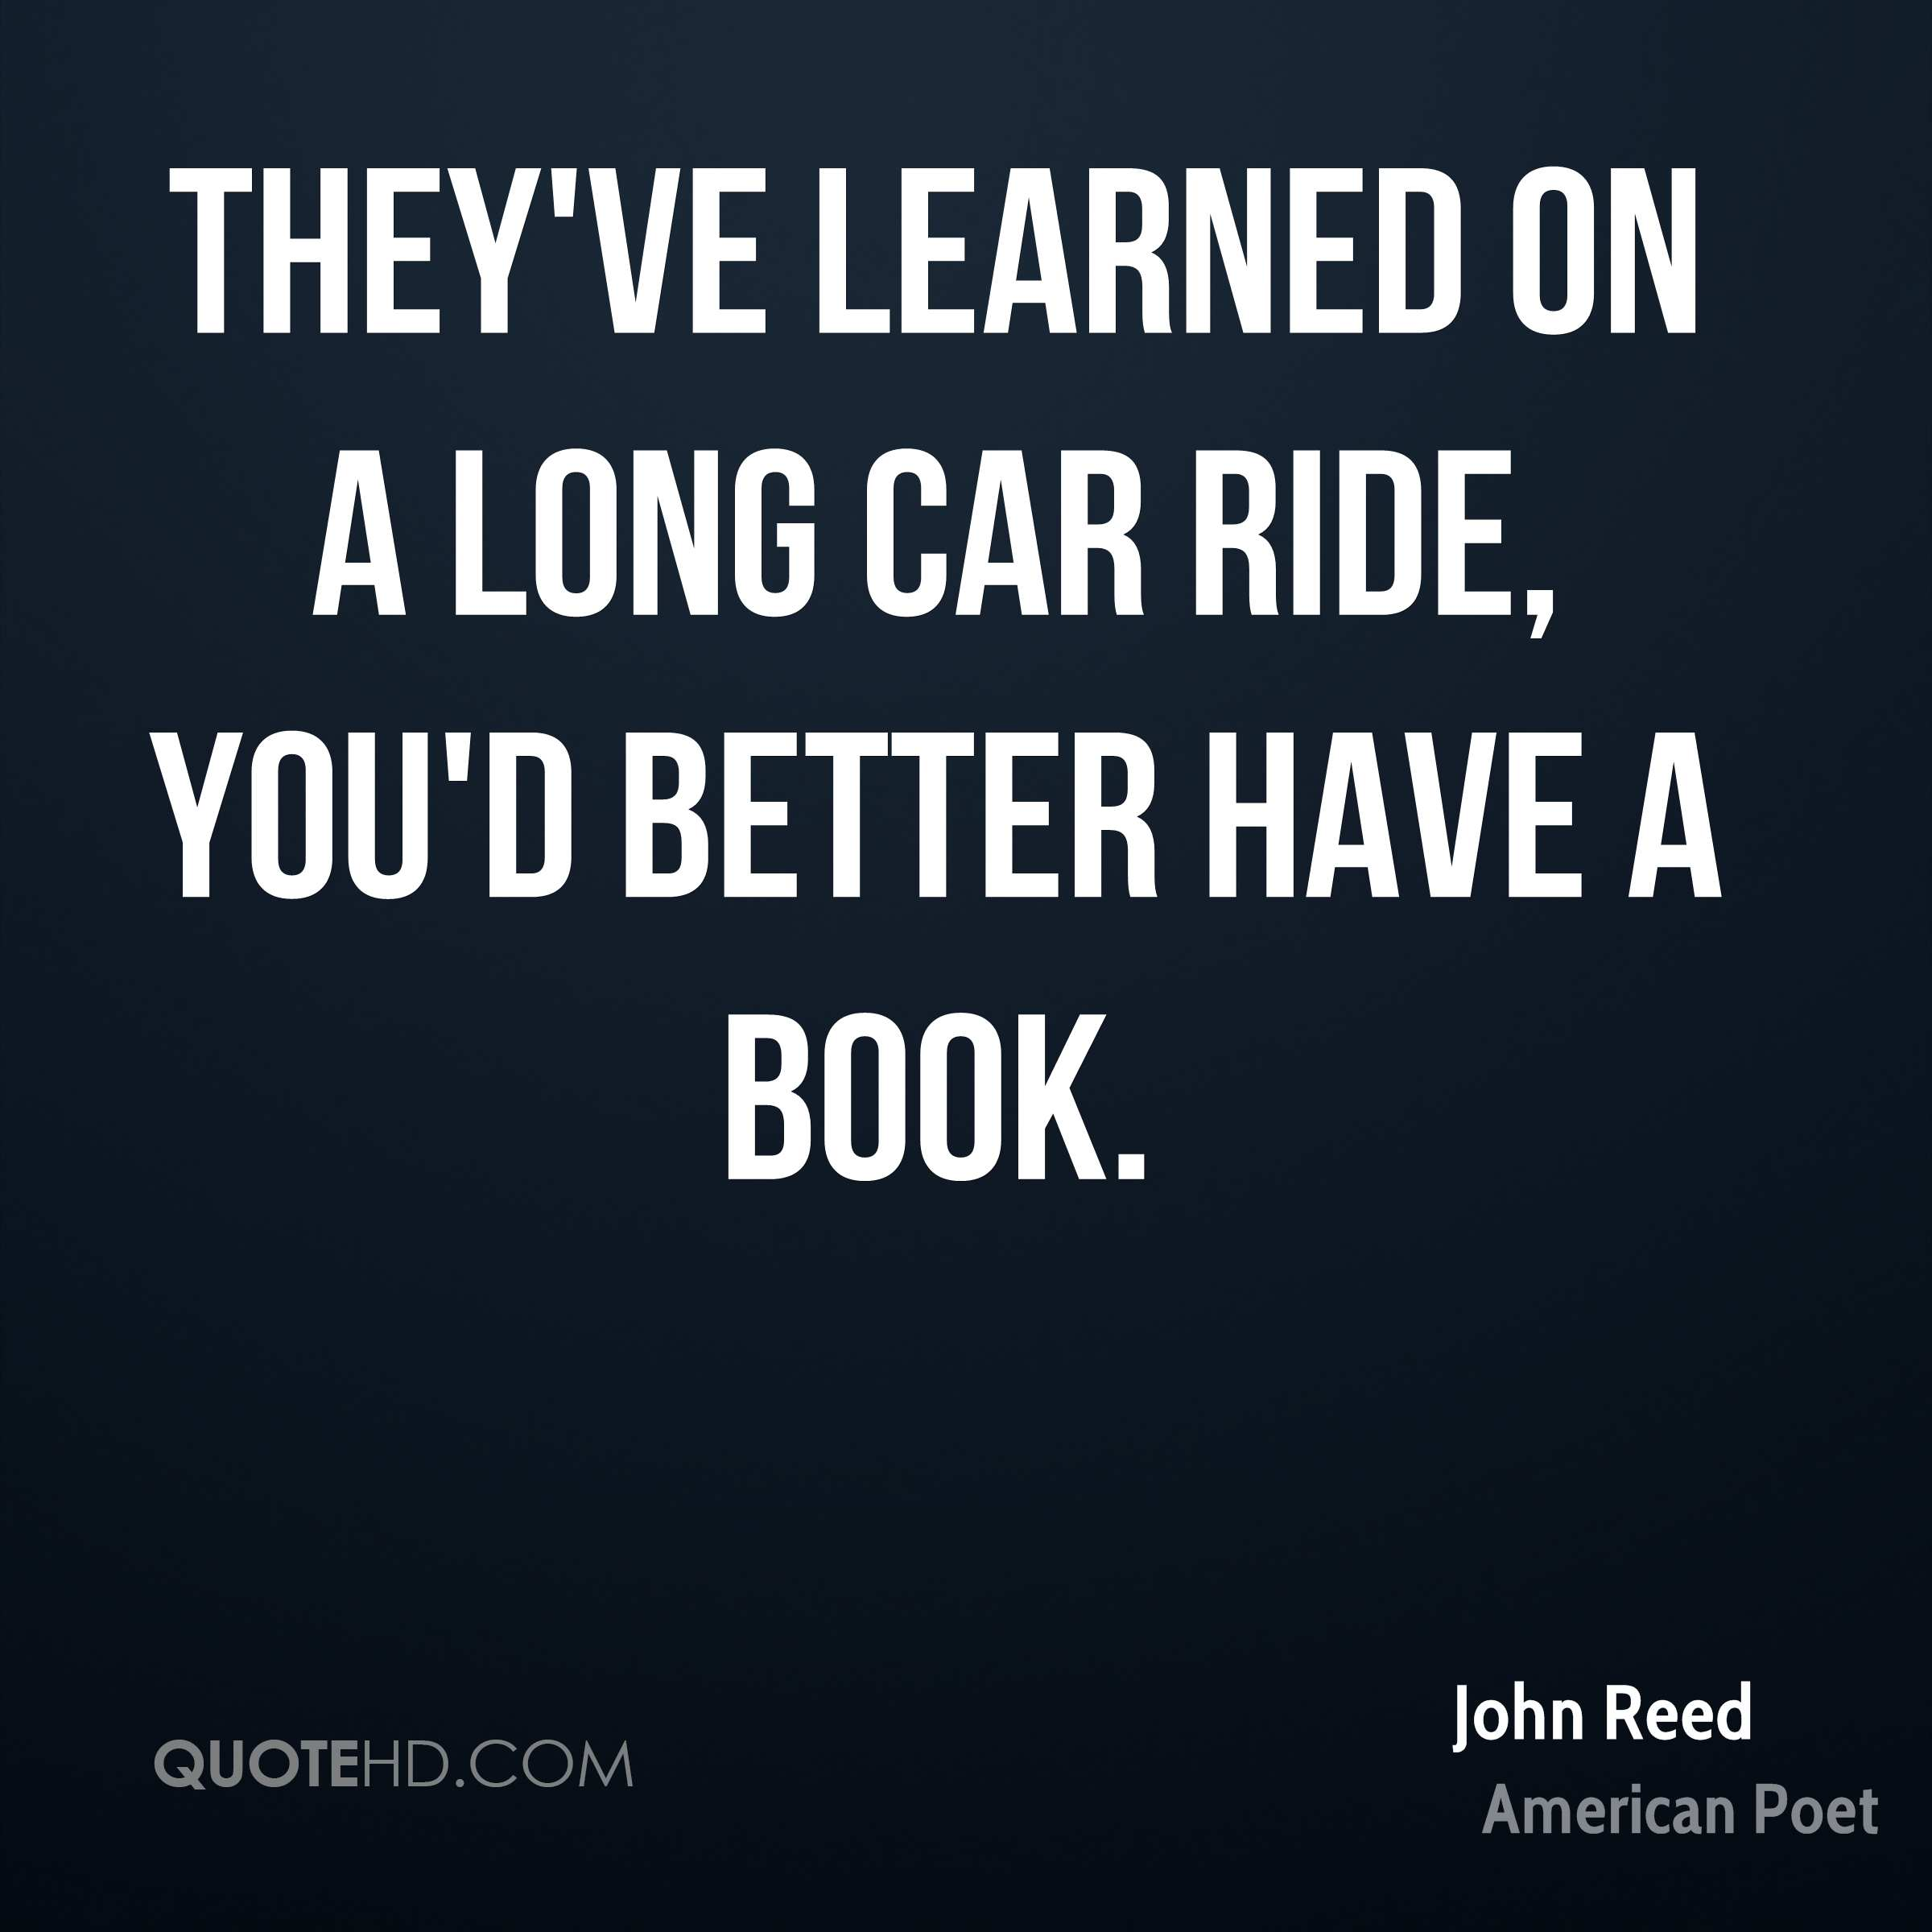 They've learned on a long car ride, you'd better have a book.